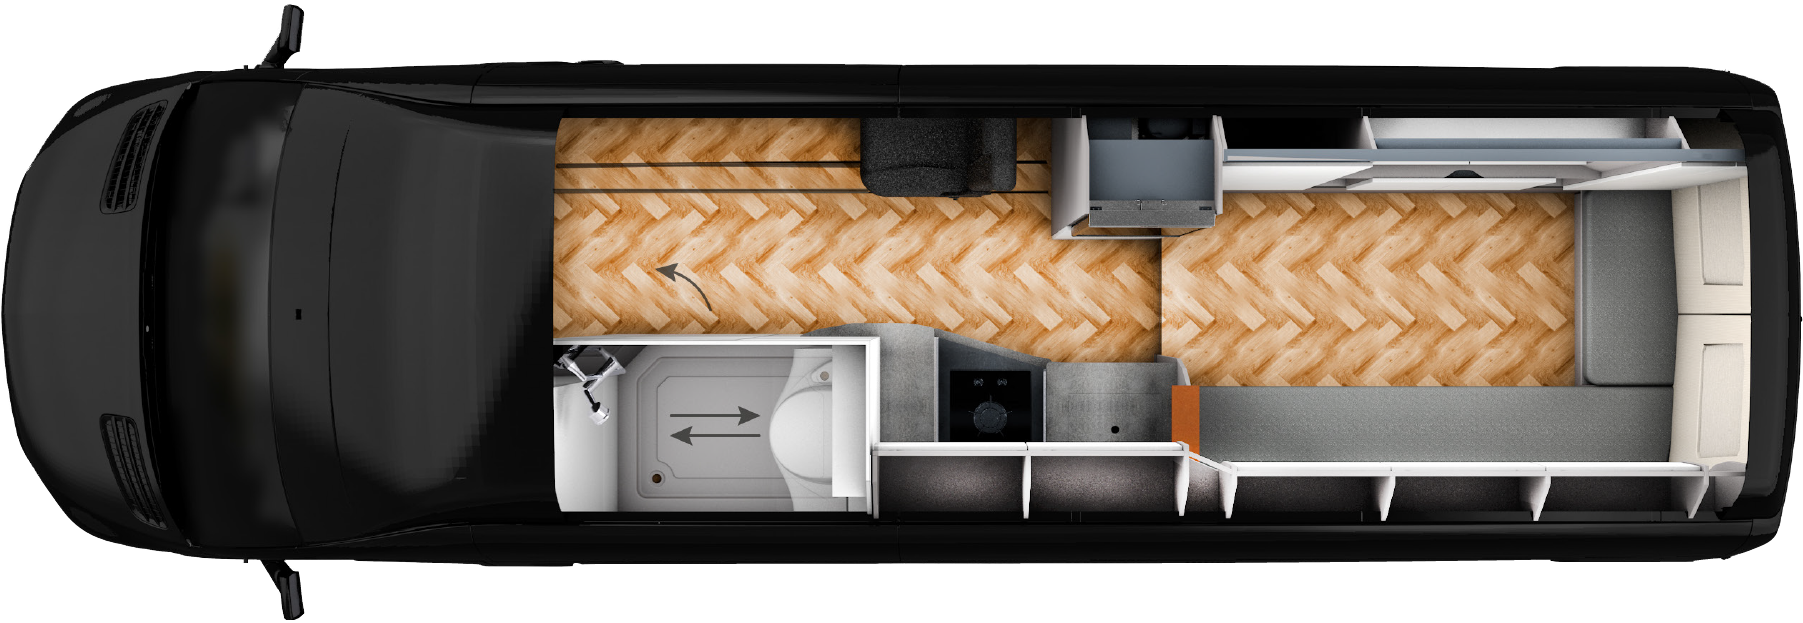 Campervan Yucon 7.0 Lounge by FRANKIA – Grundriss